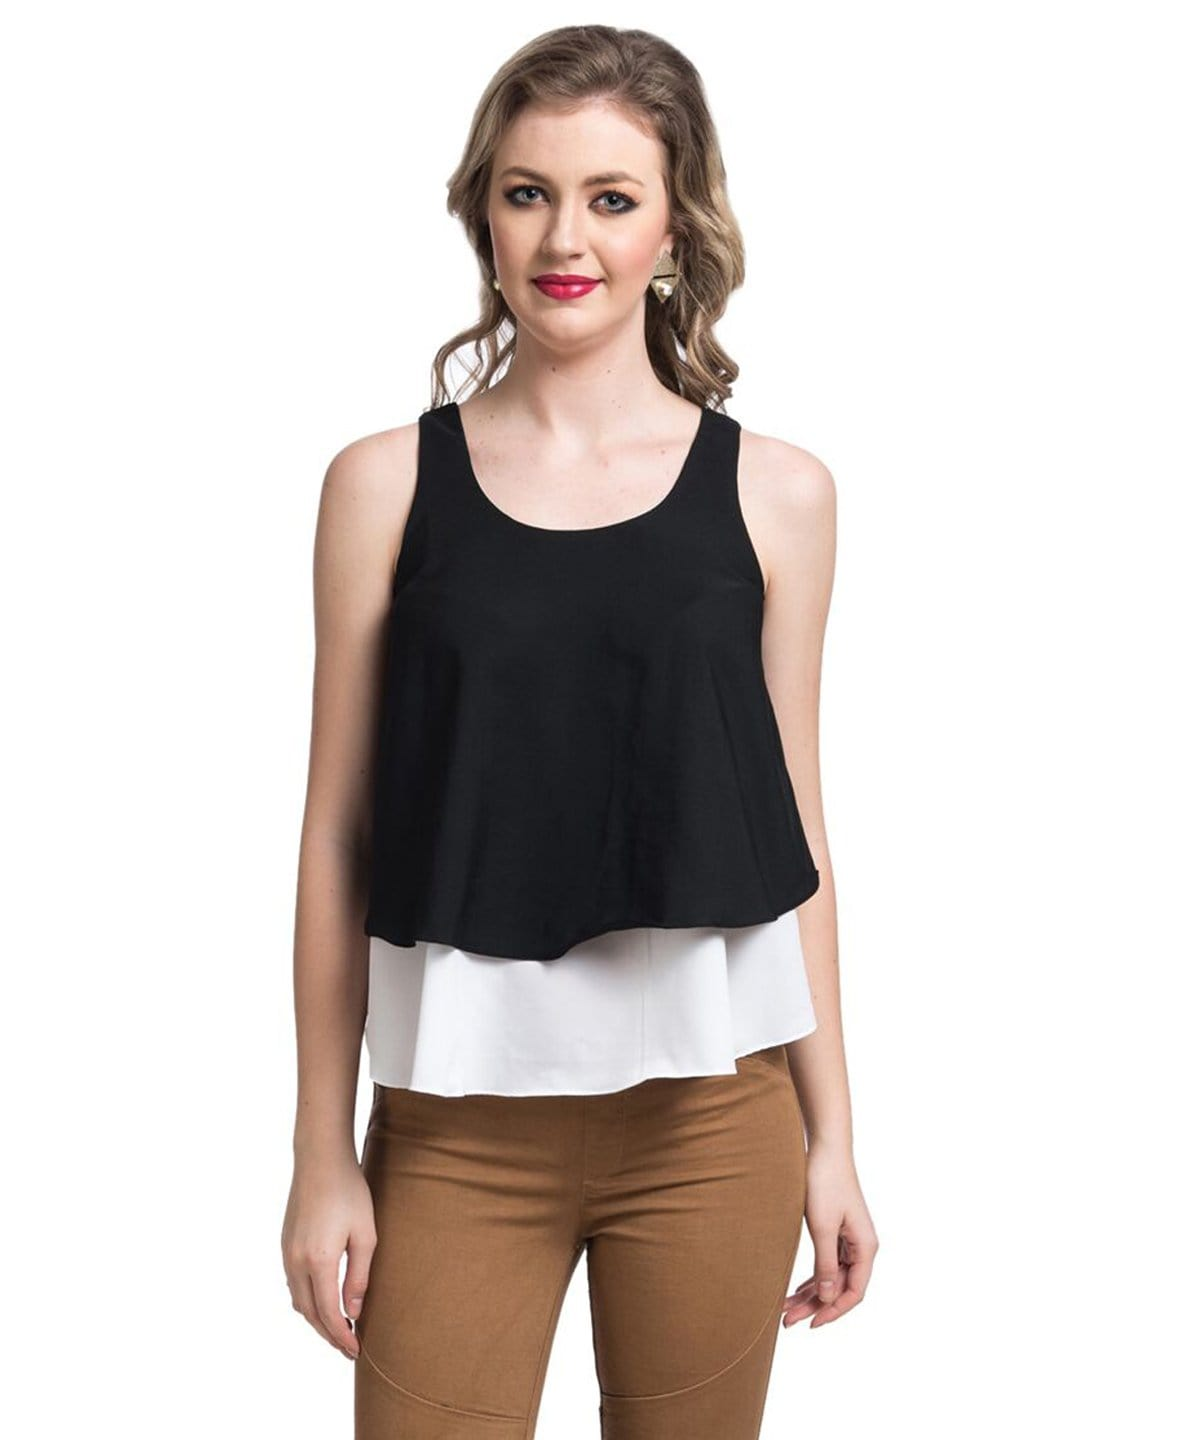 Uptownie Solid Black & White Layered Crepe Top 1 summer sale